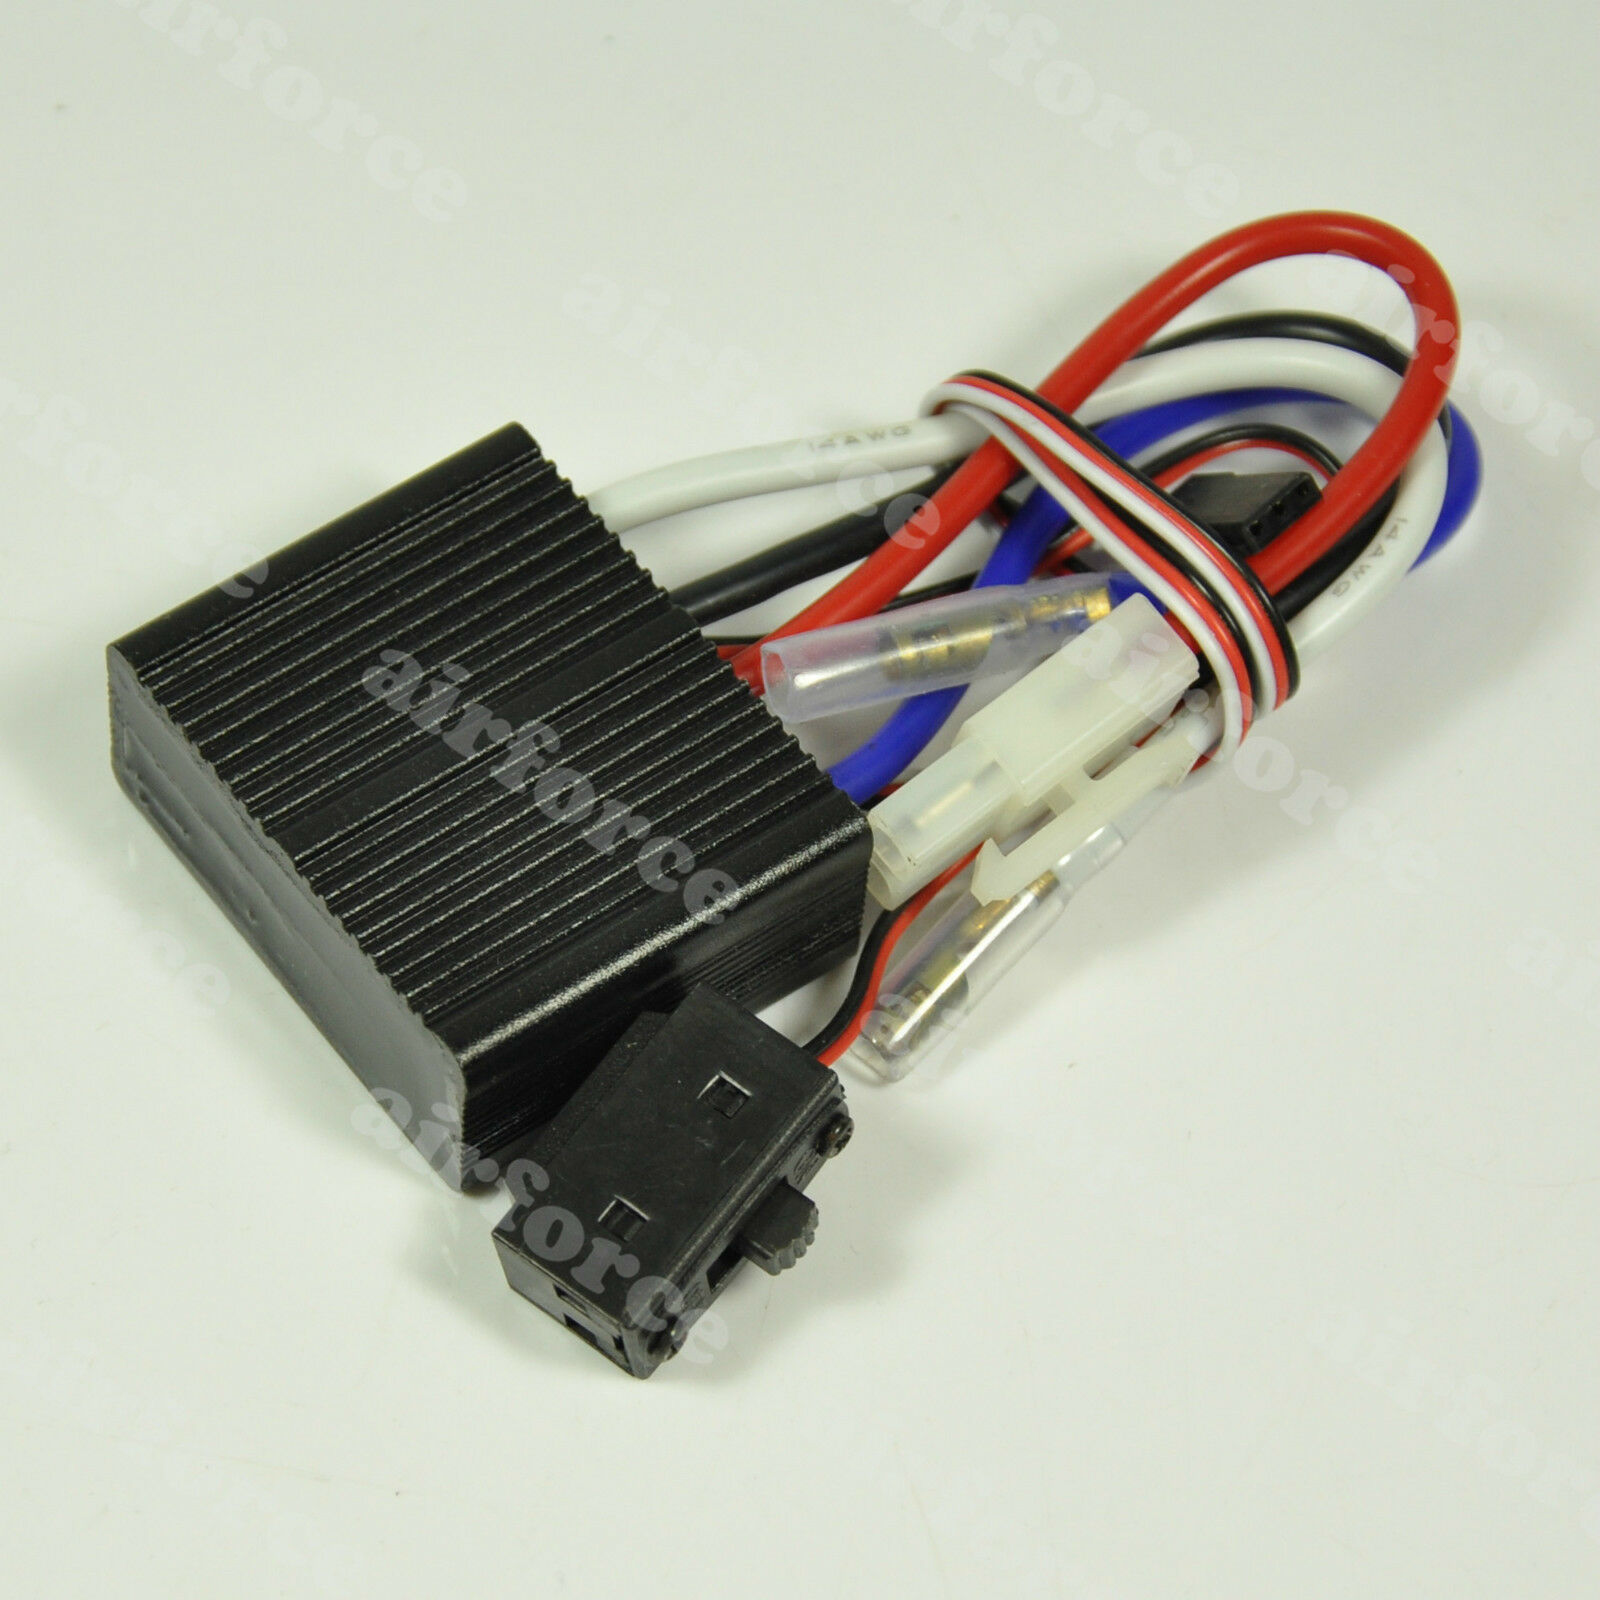 24V Bidirectional Brush ESC Two-way  Electronic for RC plane auto Boat Tank modellolo  forma unica